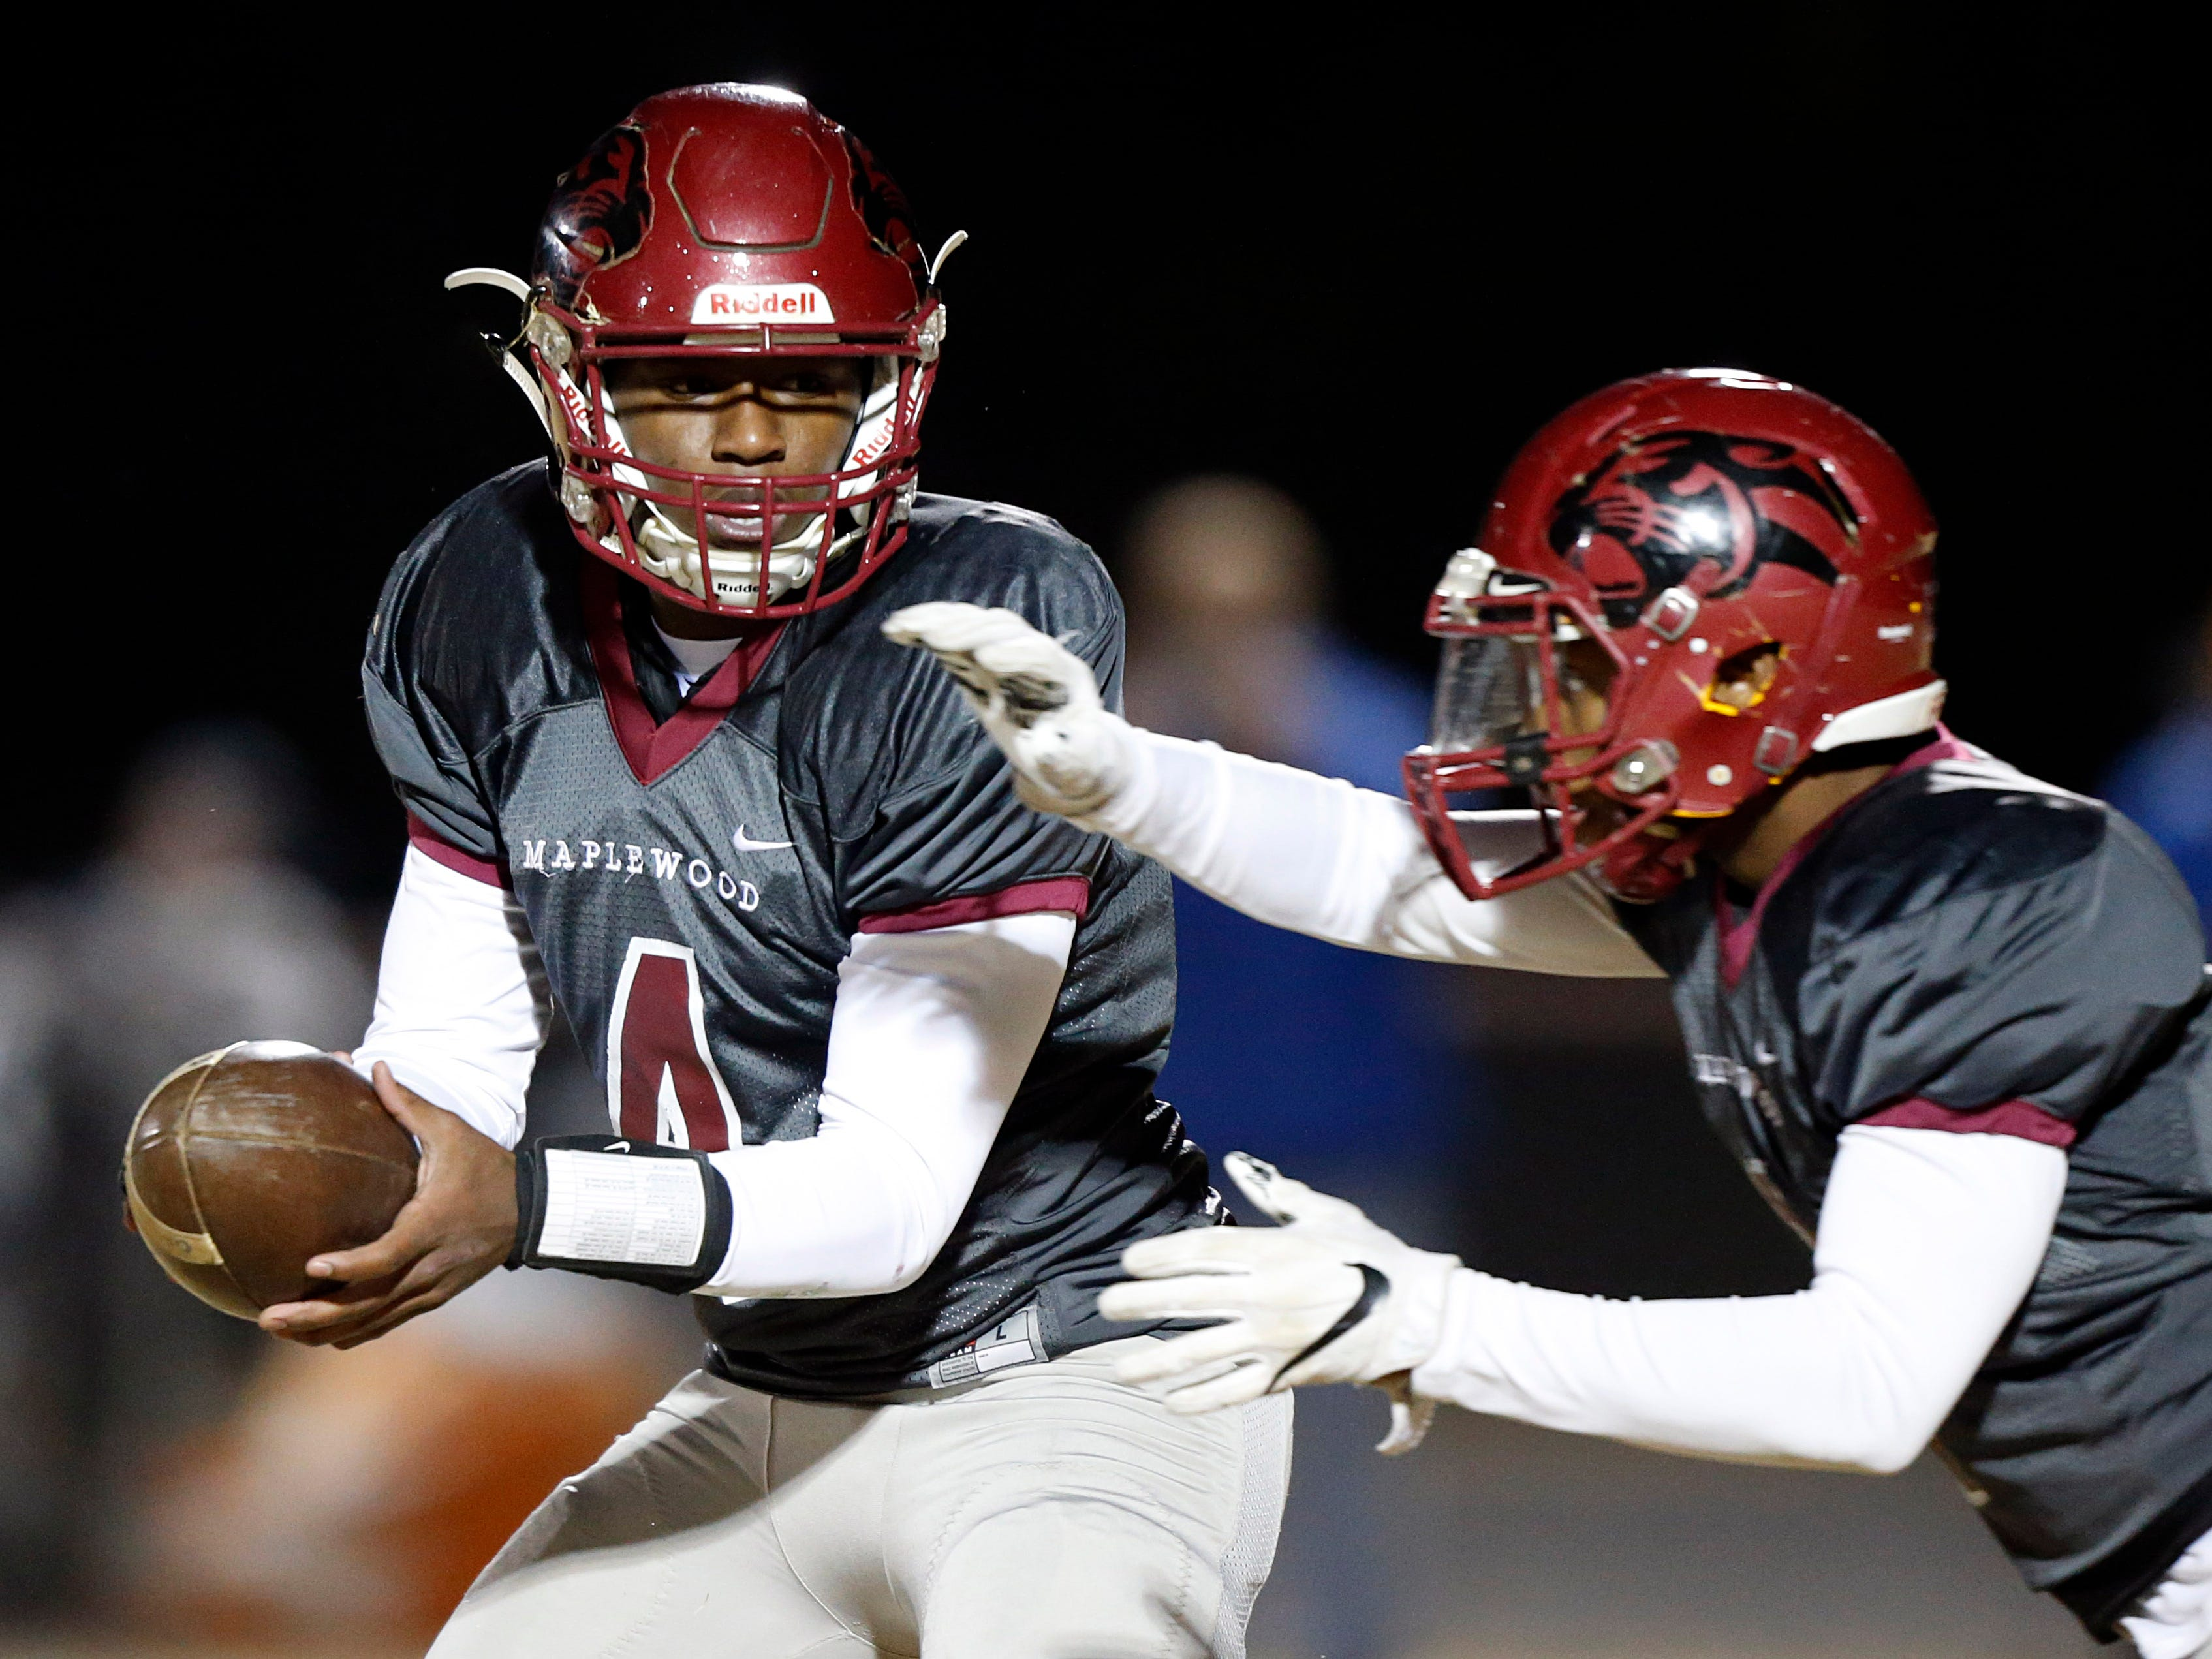 Maplewood's Bobo Hodges (4) turns to hand the ball off to David Southerland during their game against Greeneville Friday, Nov. 23, 2018, in Nashville, TN.